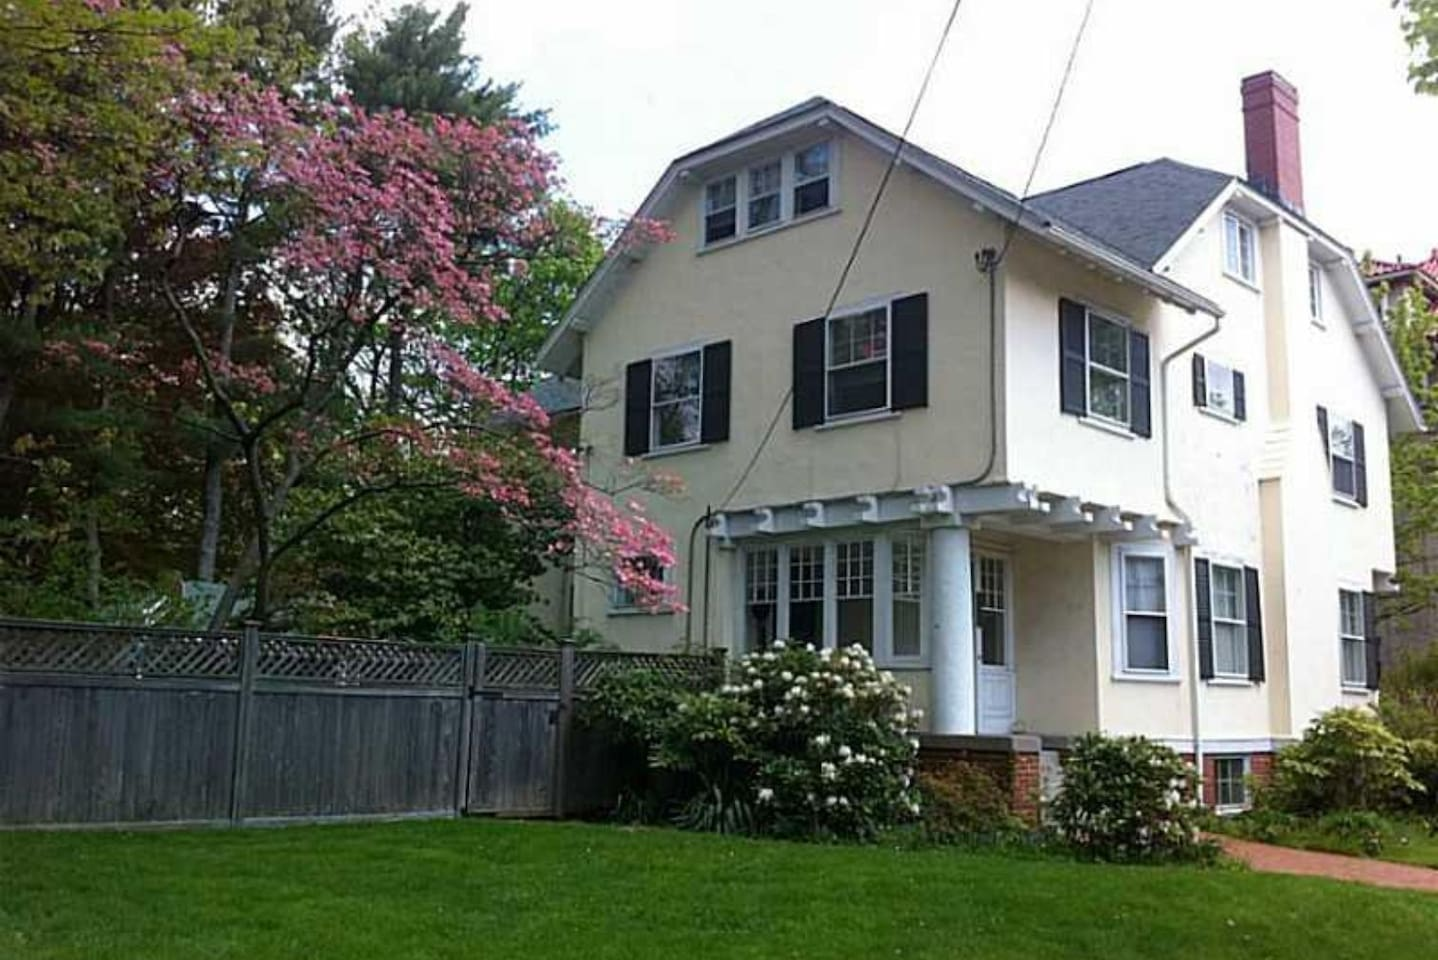 Well maintained historic home on quiet street.